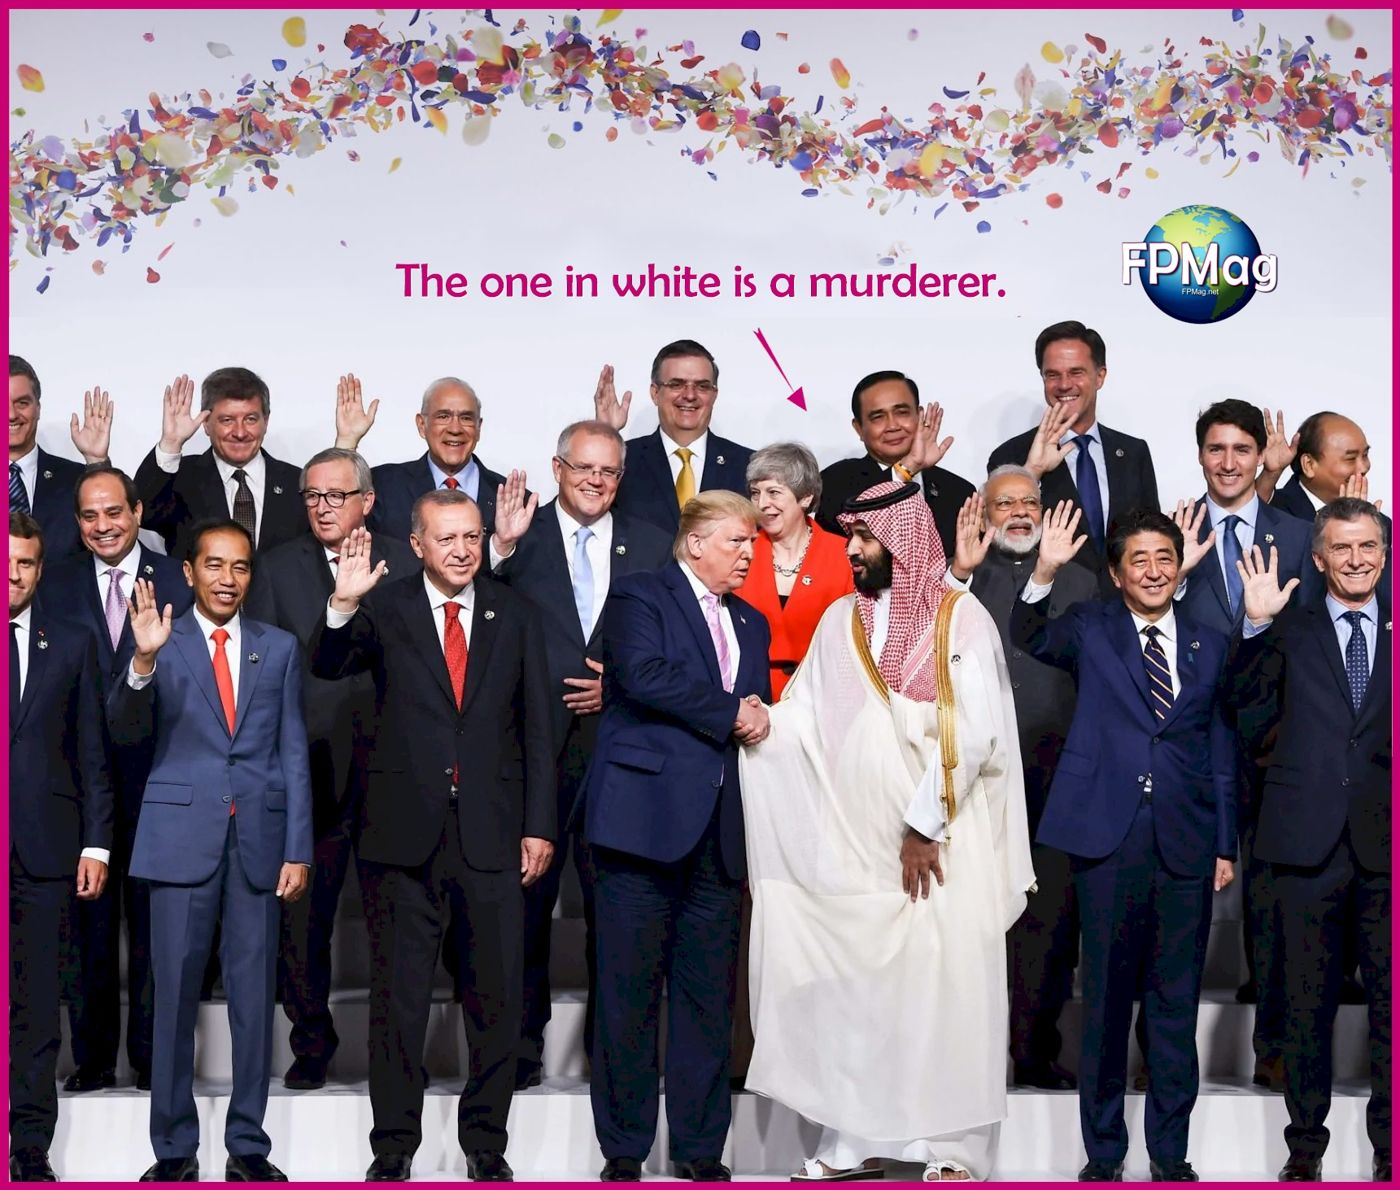 G20 Summit - The one in White is a Murderer